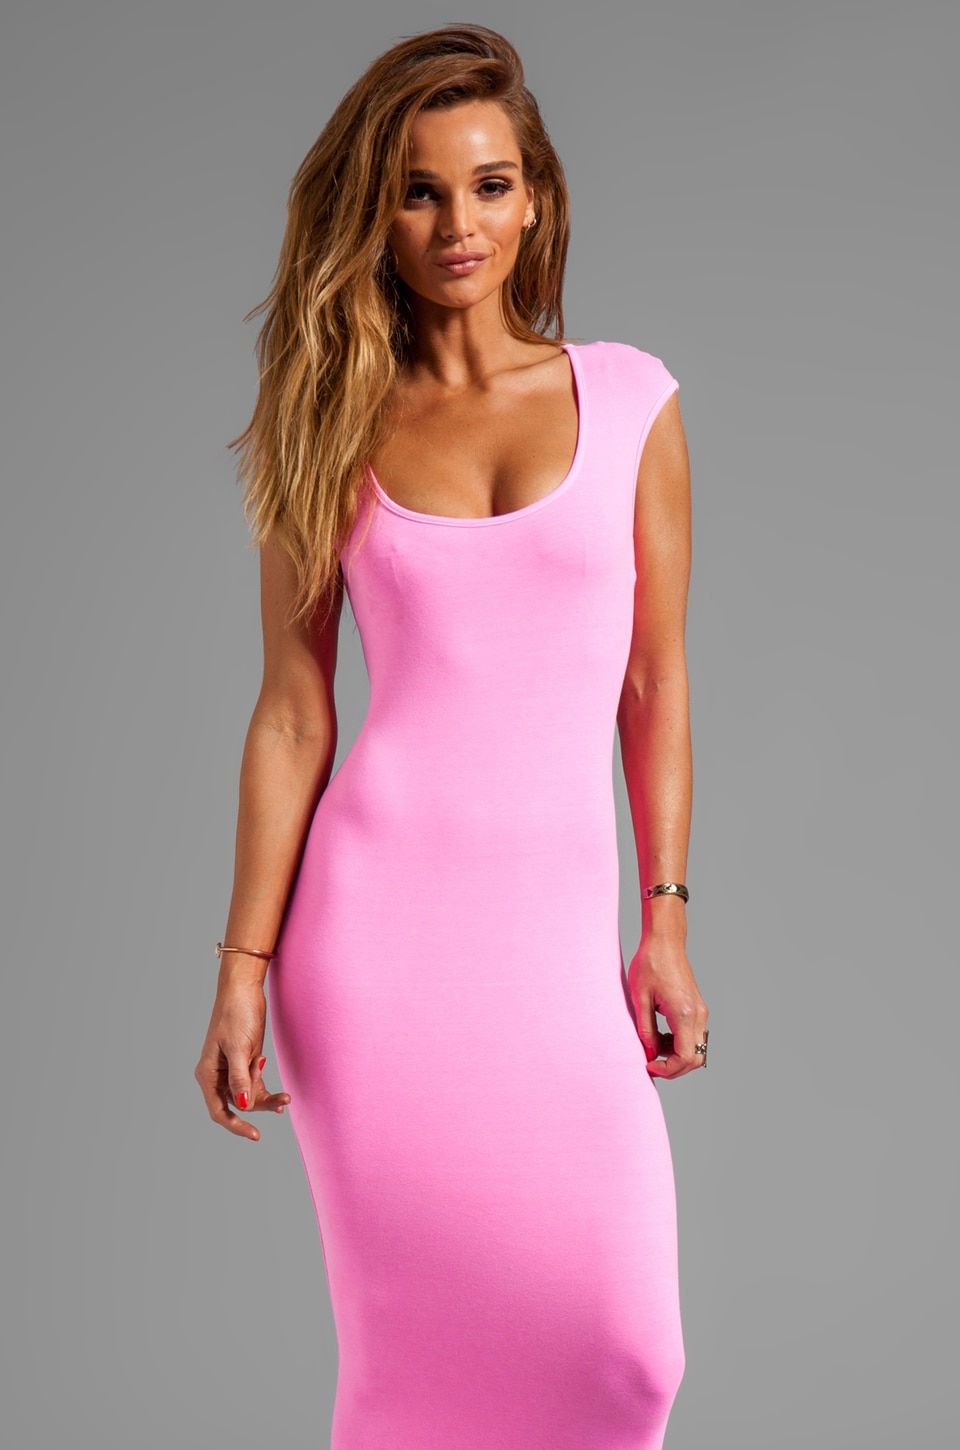 MONROW 1X1 Cap Sleeve T Dress in Neon Pink